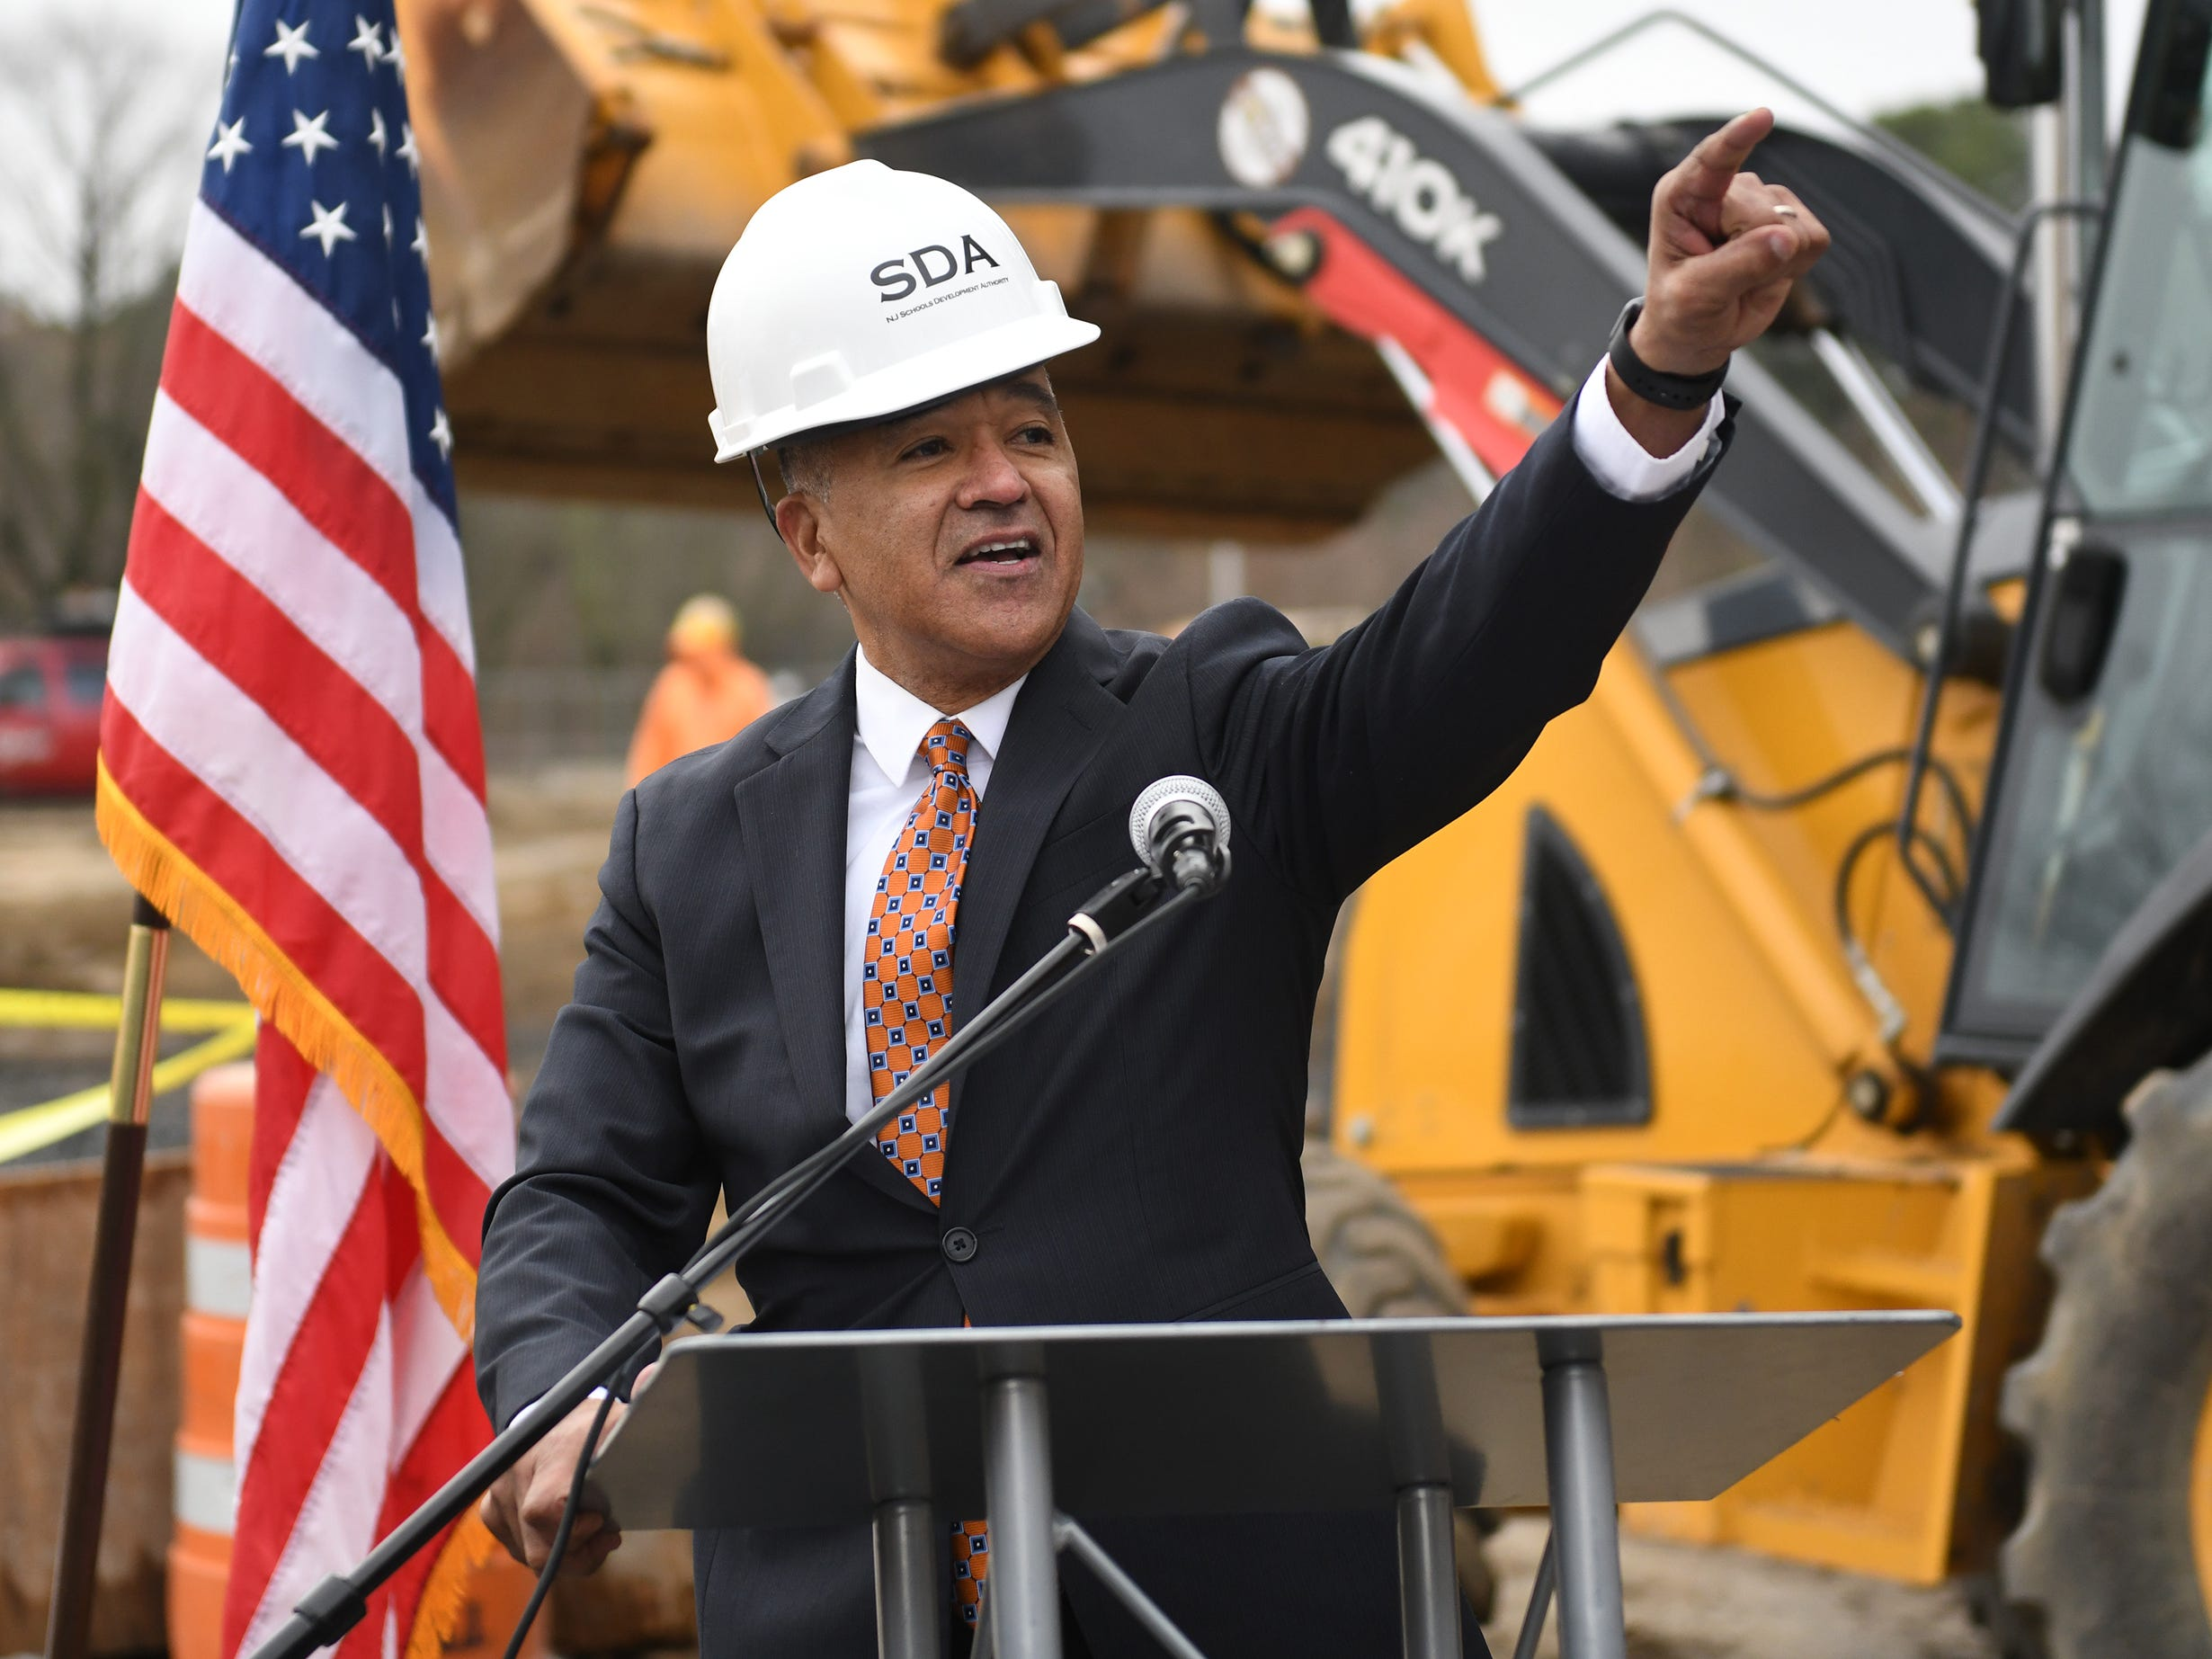 Millville Mayor Michael Santiago speaks during the groundbreaking ceremony at Millville High School on Thursday, Feb. 7, 2019.